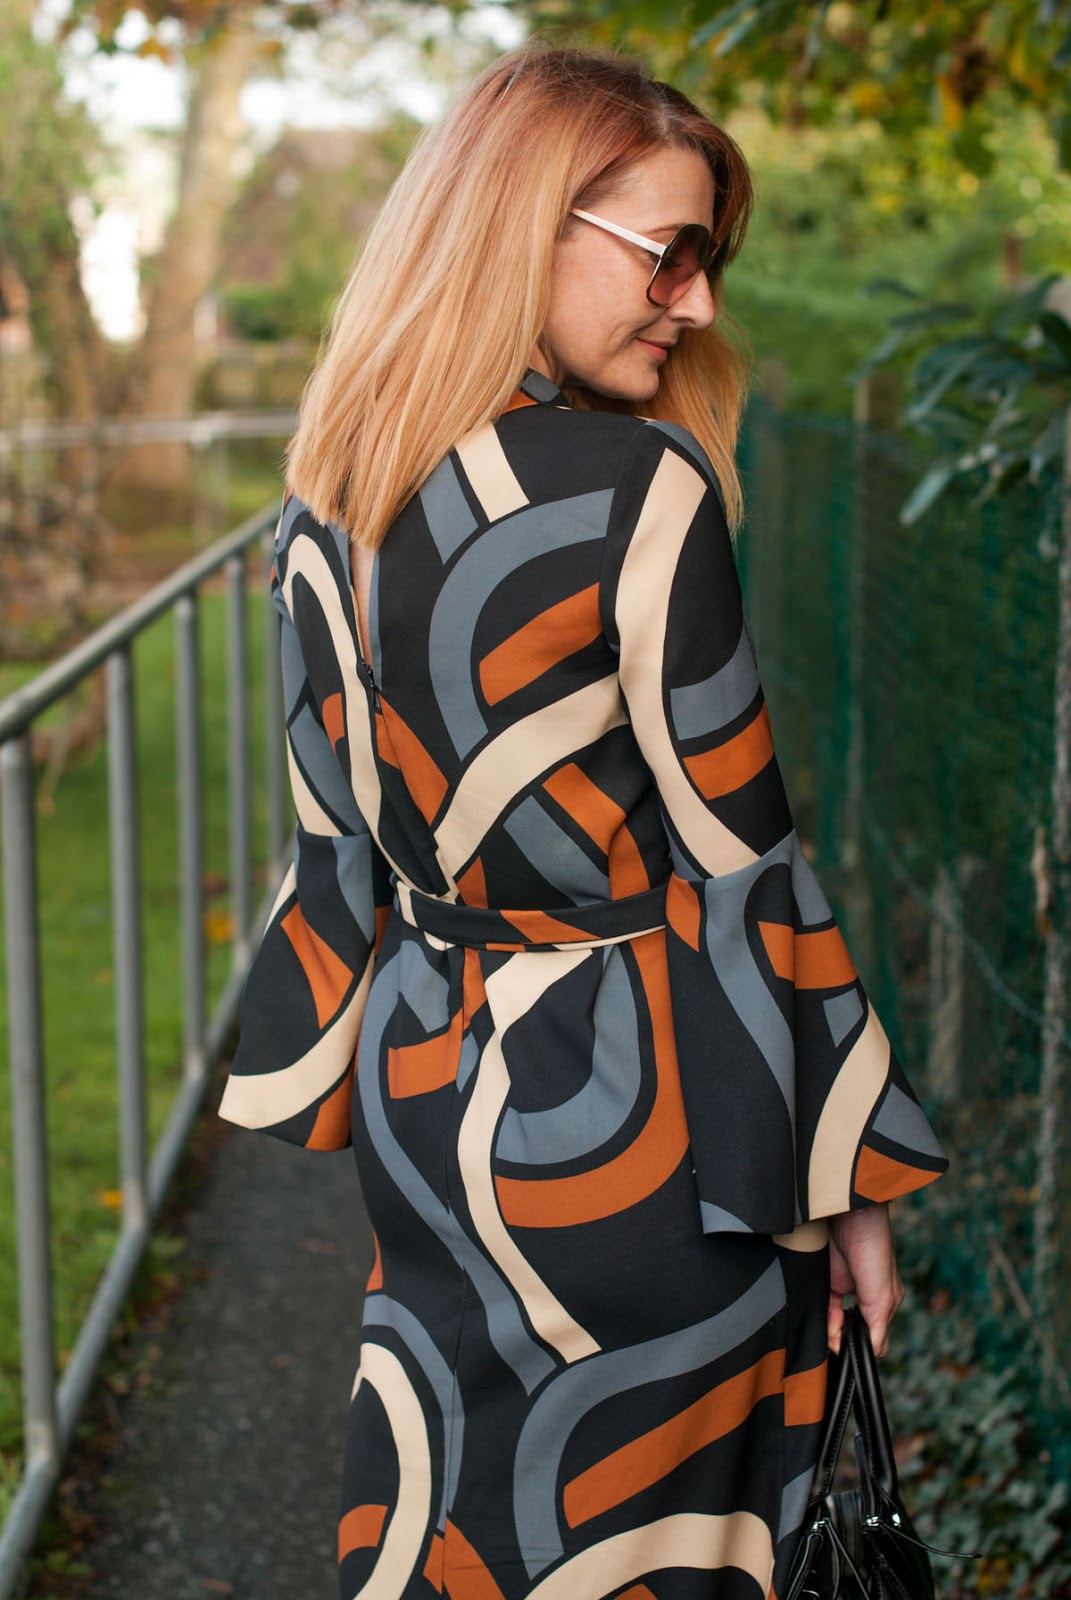 The Ultimate 70s-Style Patterned Midi Dress #iwillwearwhatilike